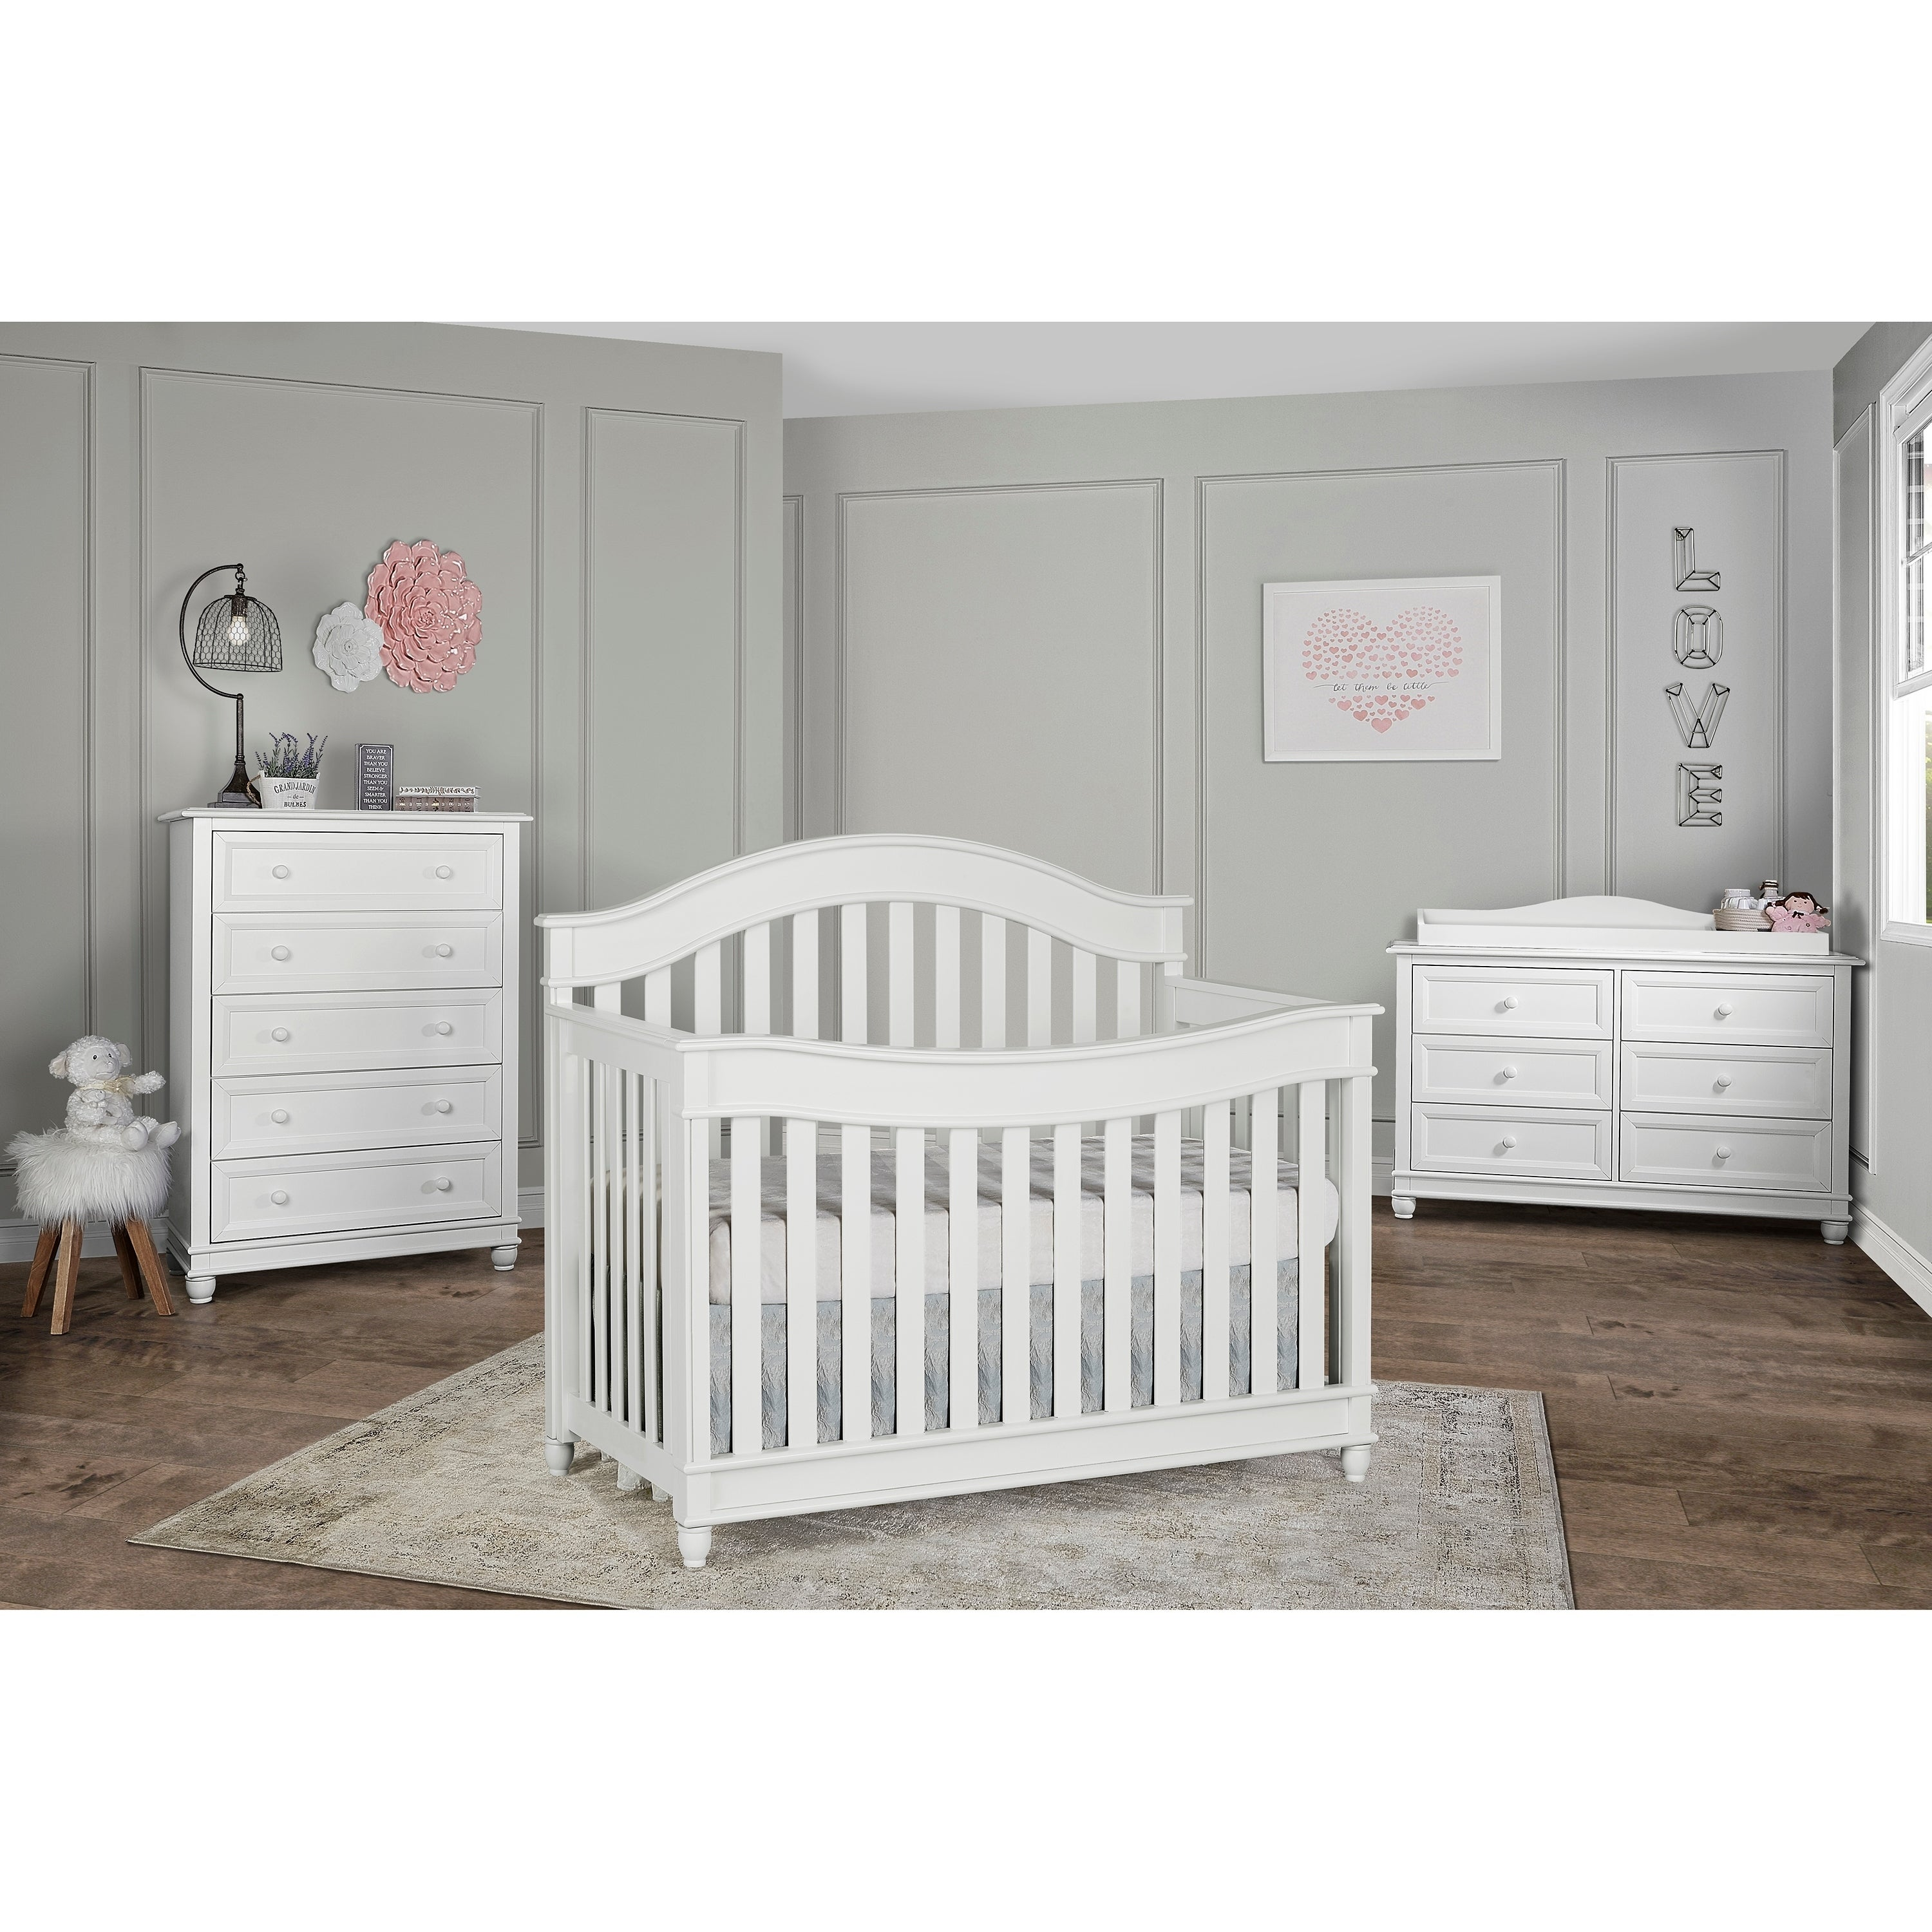 Dreamonme Mia Moda Parkland White Wood Convertible Crib (...